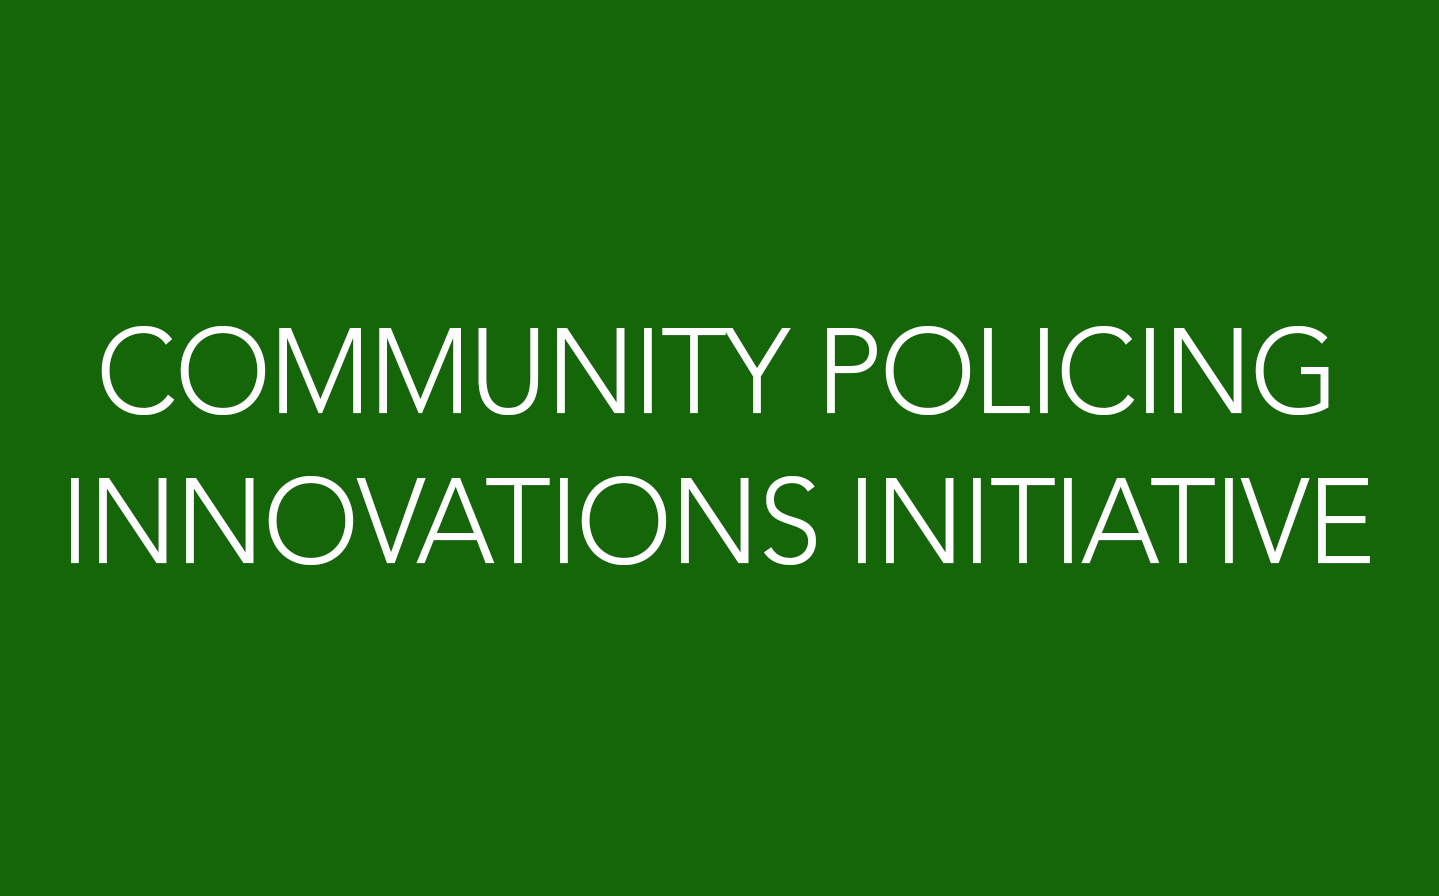 Community Policing Innovations Initiative